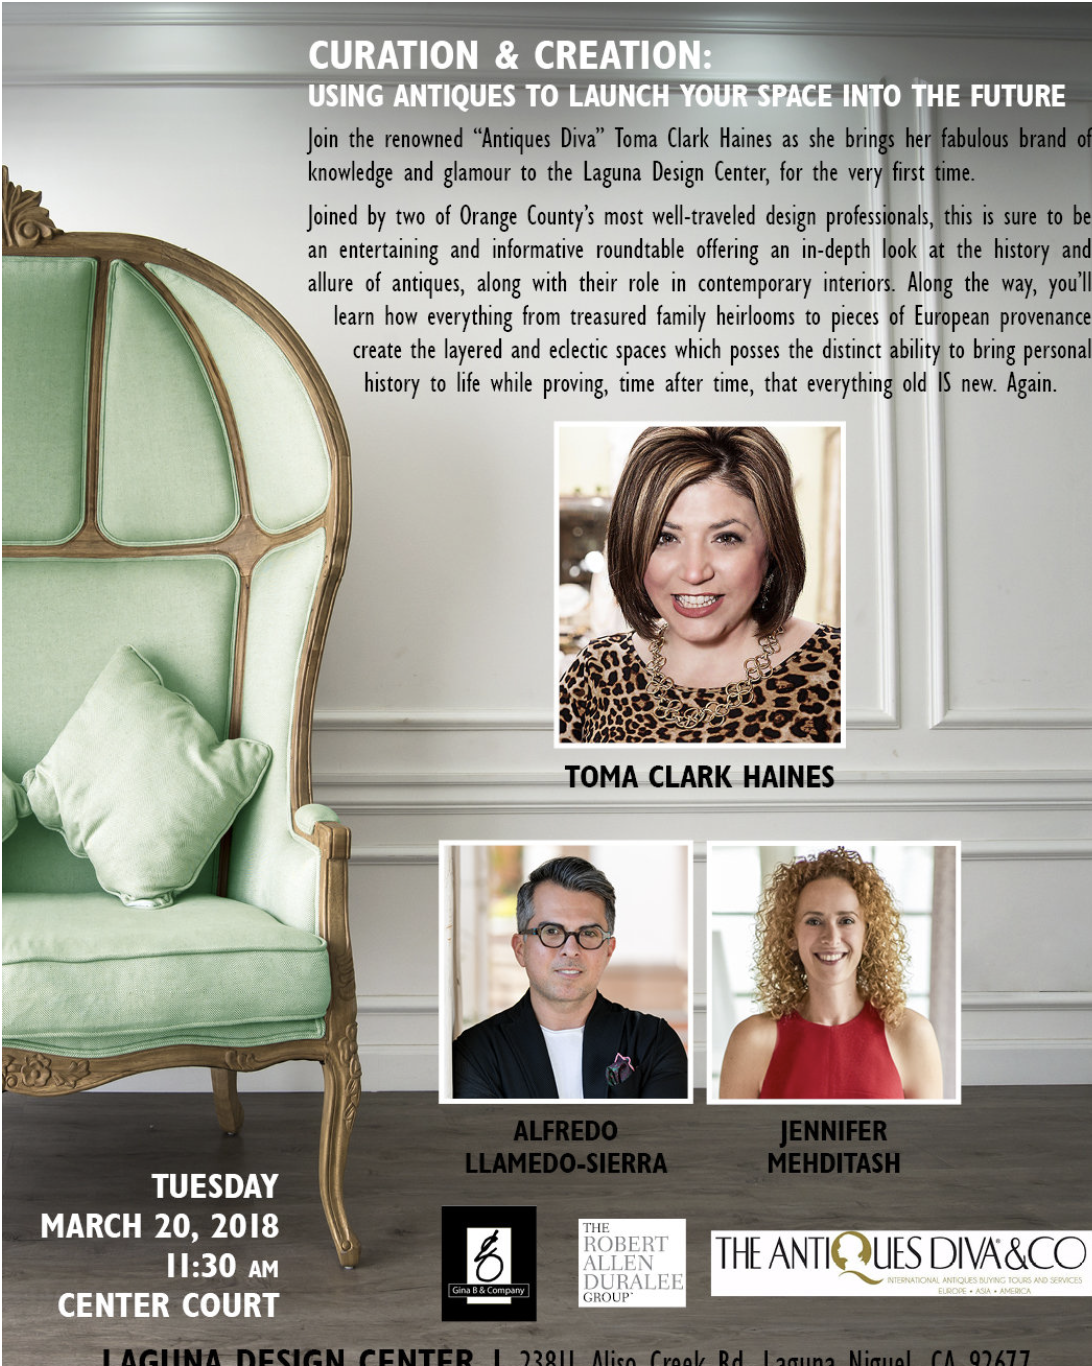 Curation & Creation- Using Antiques to Launch Your Space Into the Future | Toma Clark Haines | The Antiques Diva